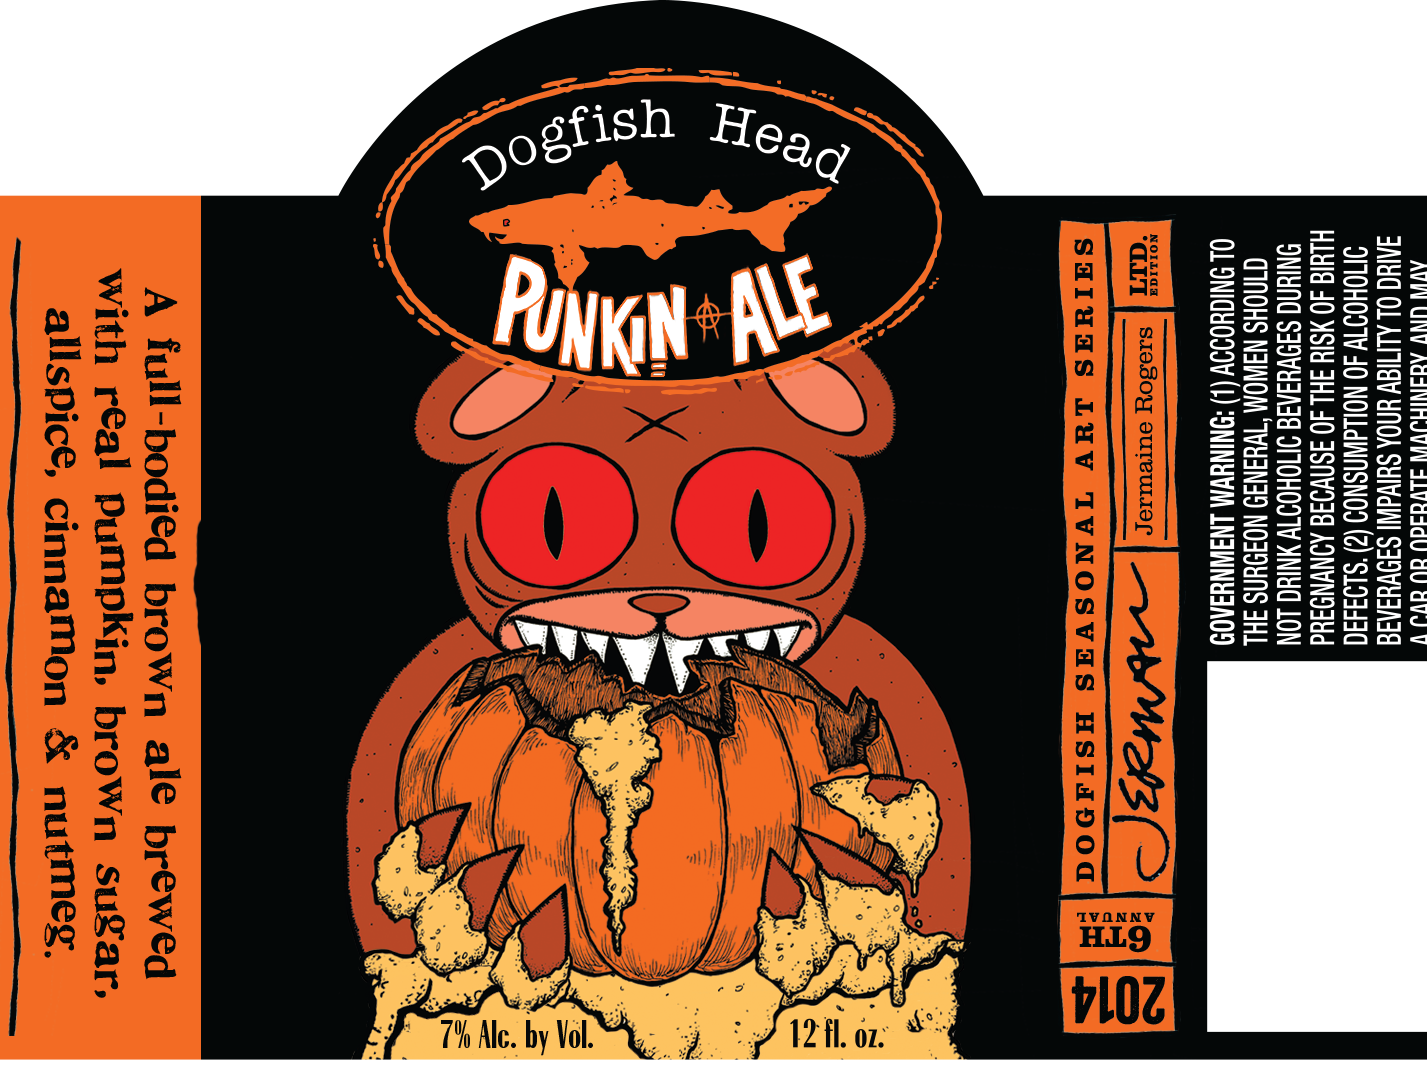 Dogfish Head's Punkin Ale label for 2014.